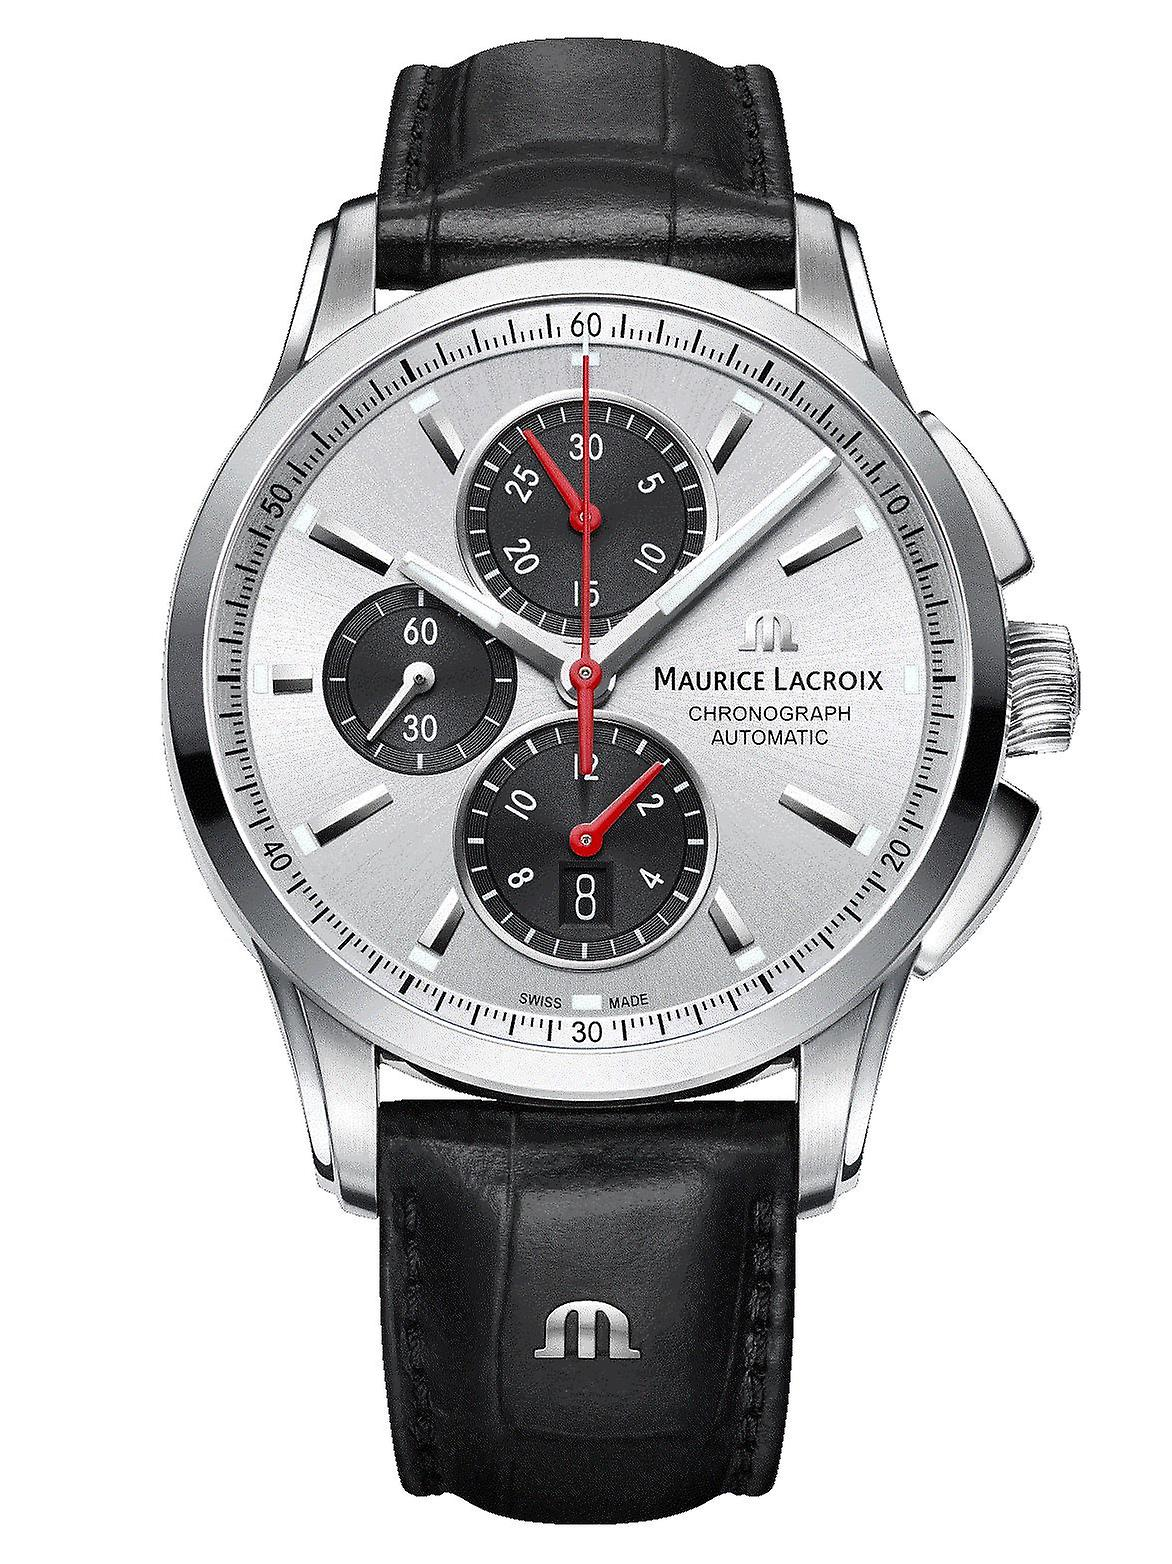 Maurice LaCroix Pontos Automatic Silver Dial Black Leather Strap Chronograph Watch PT6388-SS001-131-1